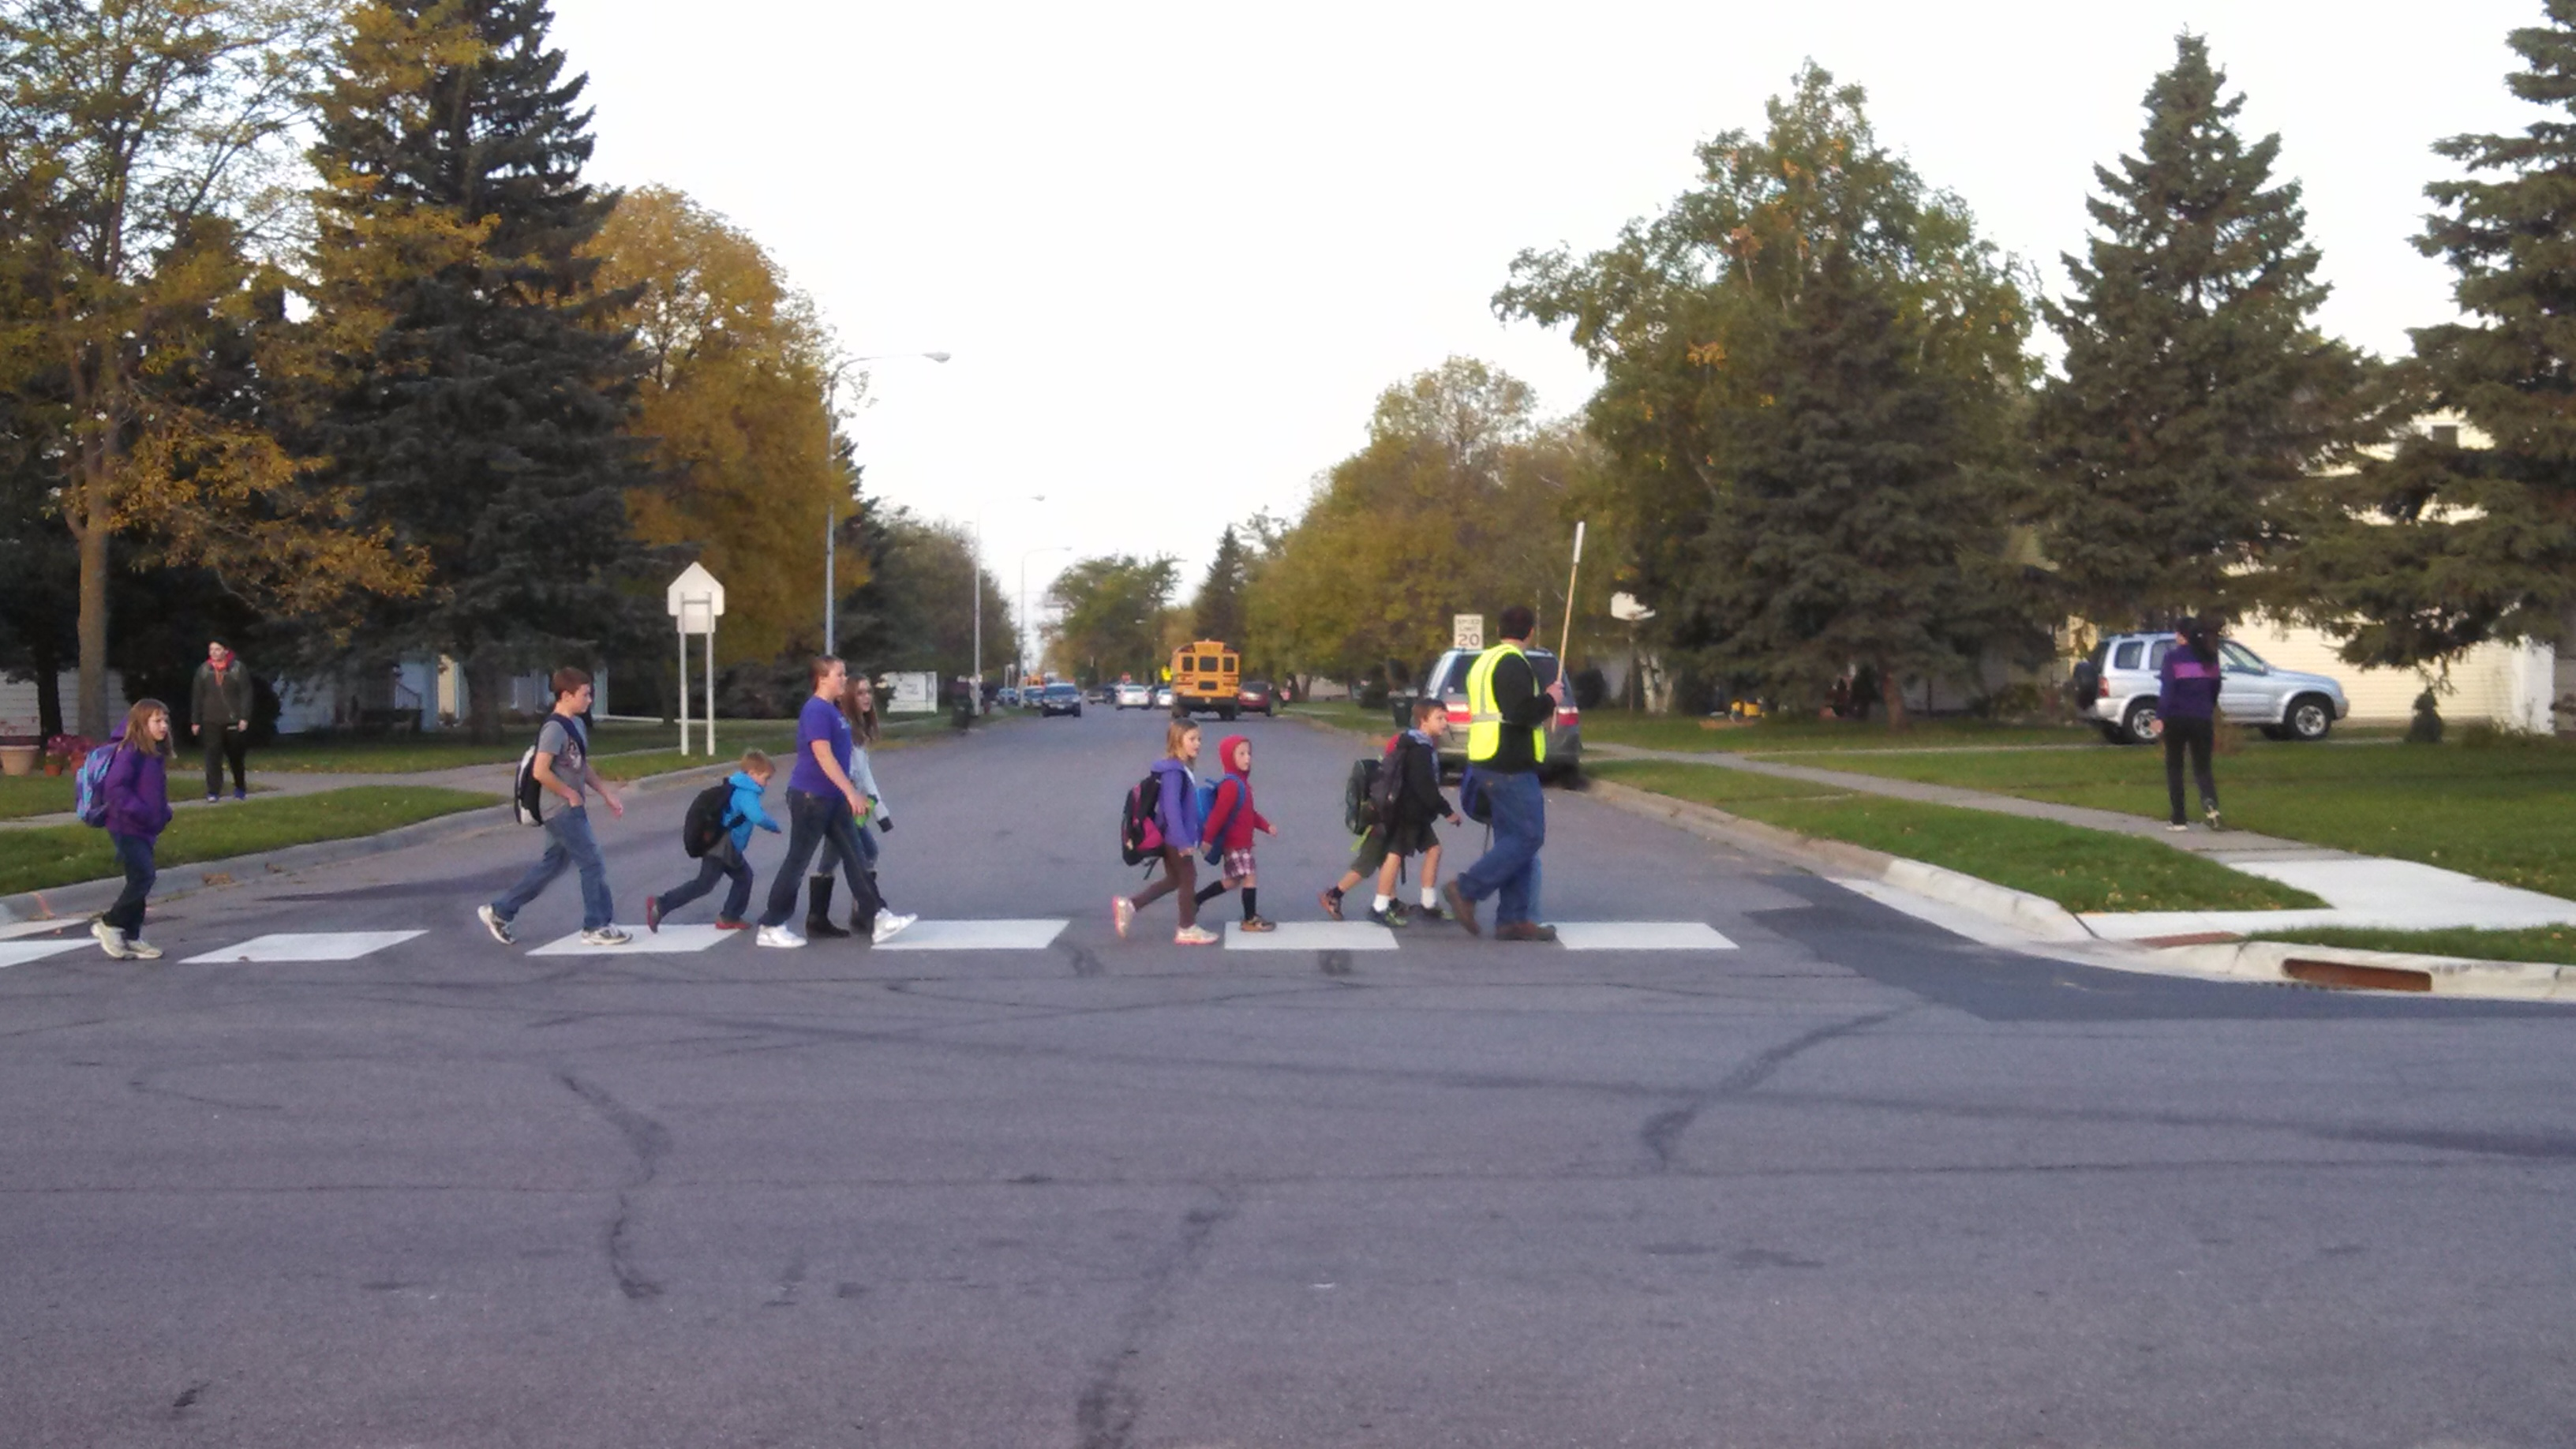 Crossing guard helping children across a street